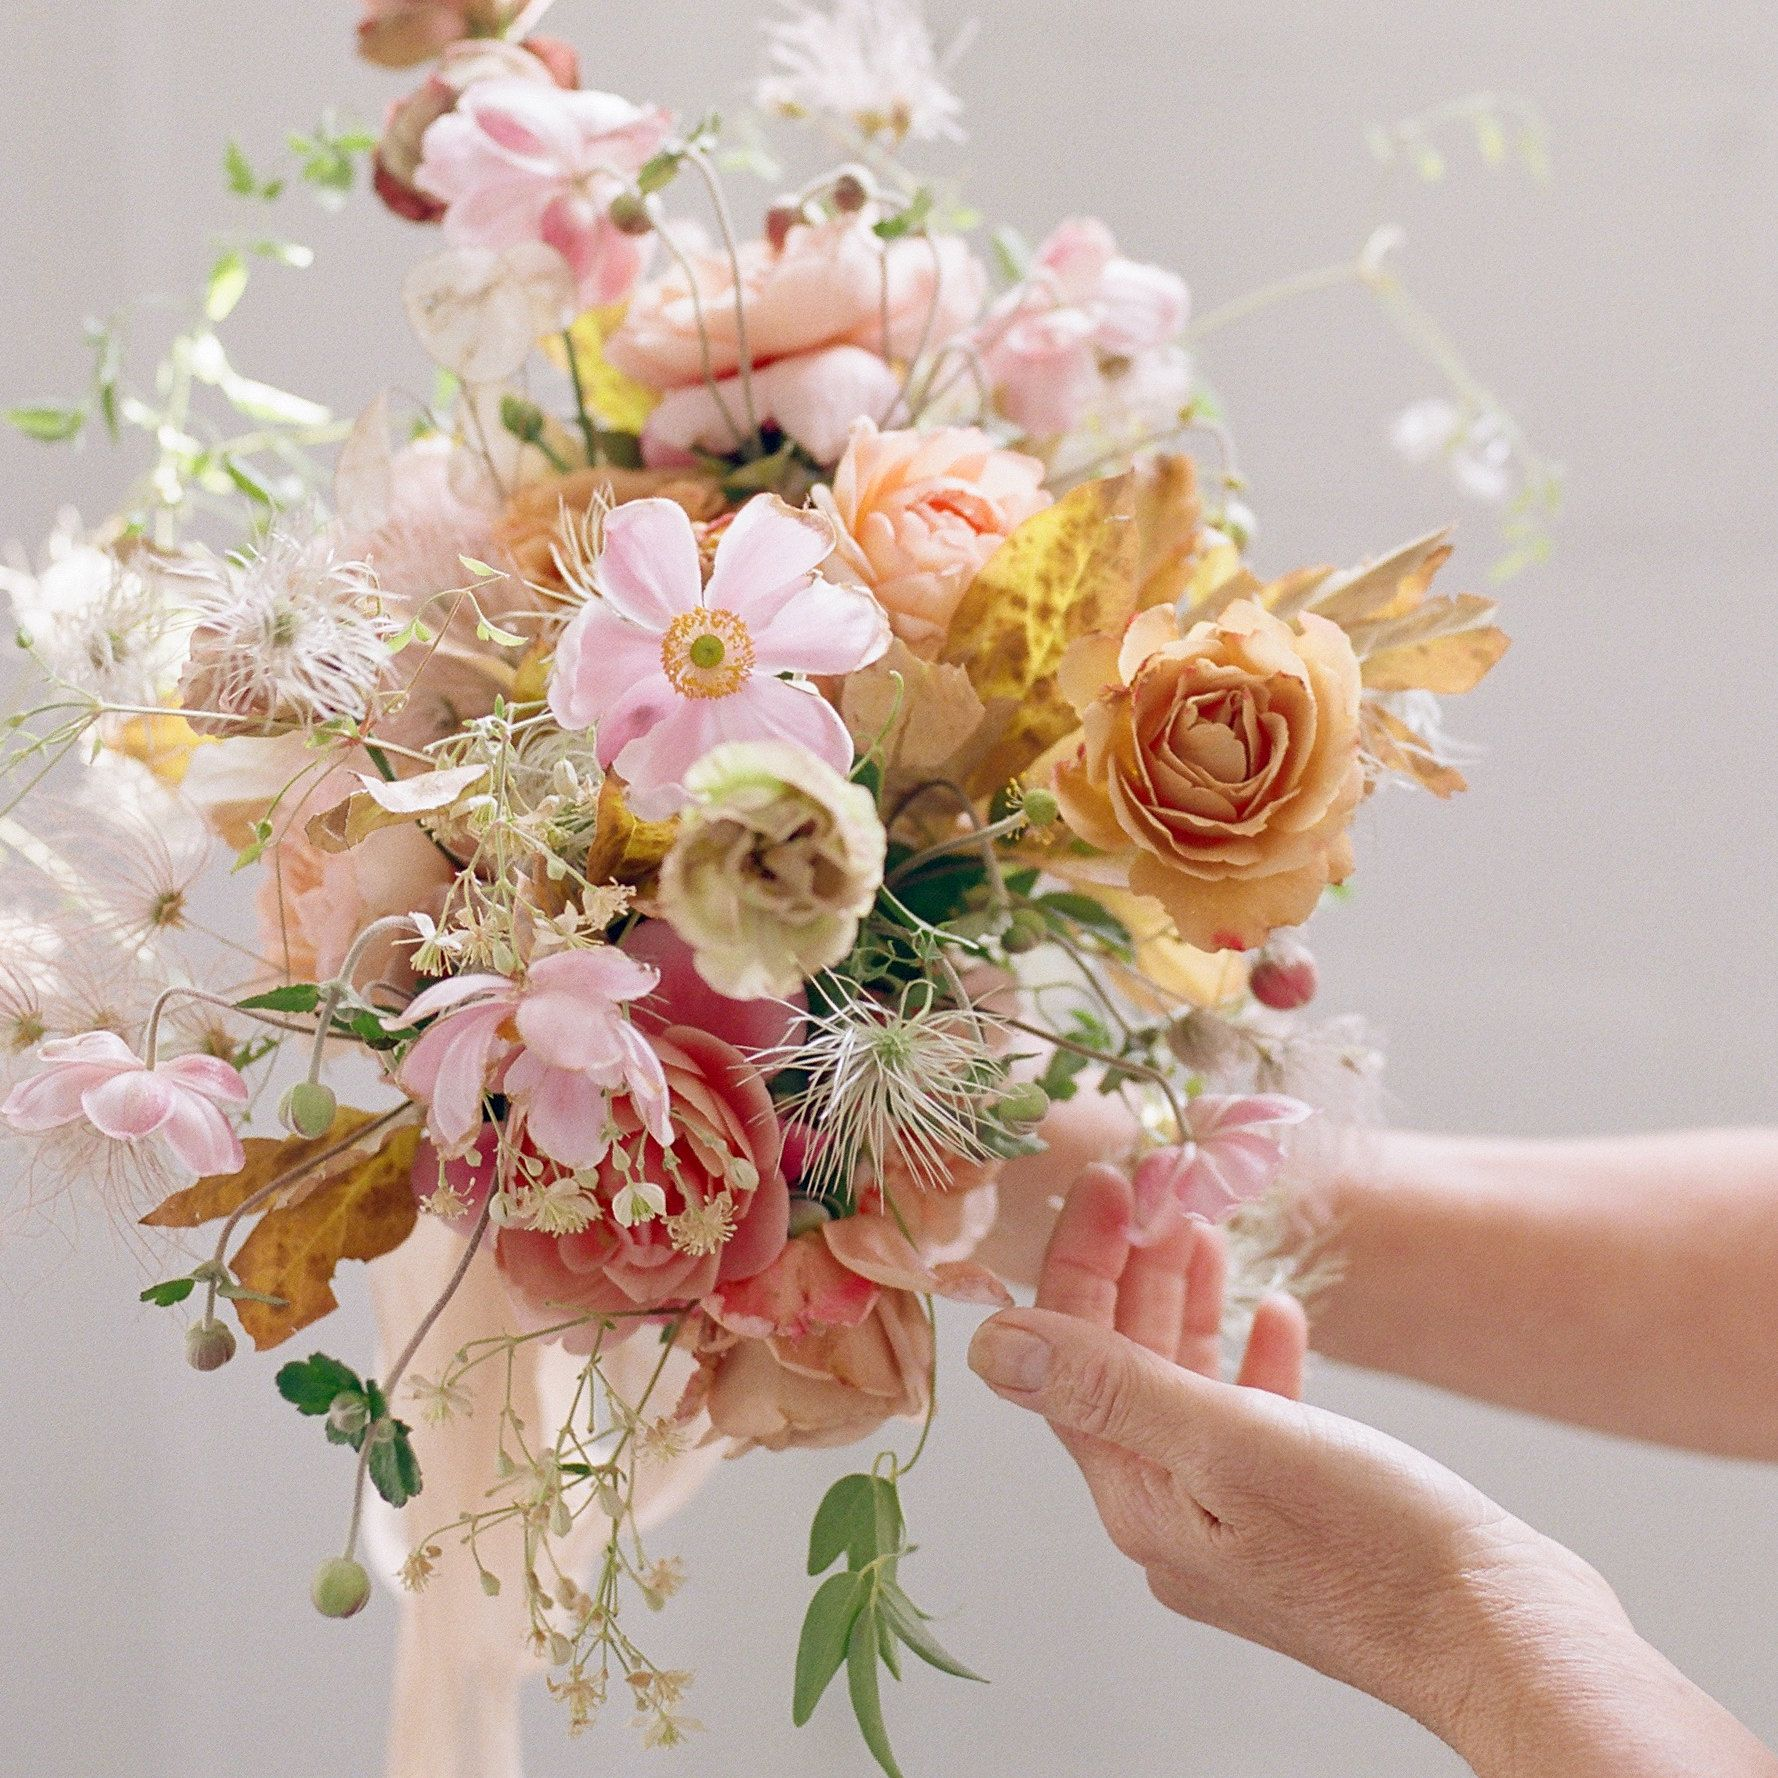 I M Offering A Surprise Easter Discount Click On The Link To Find It Sale Ends March 31 2018 Flower Bouquet Wedding Cheap Wedding Flowers Wedding Bouquets